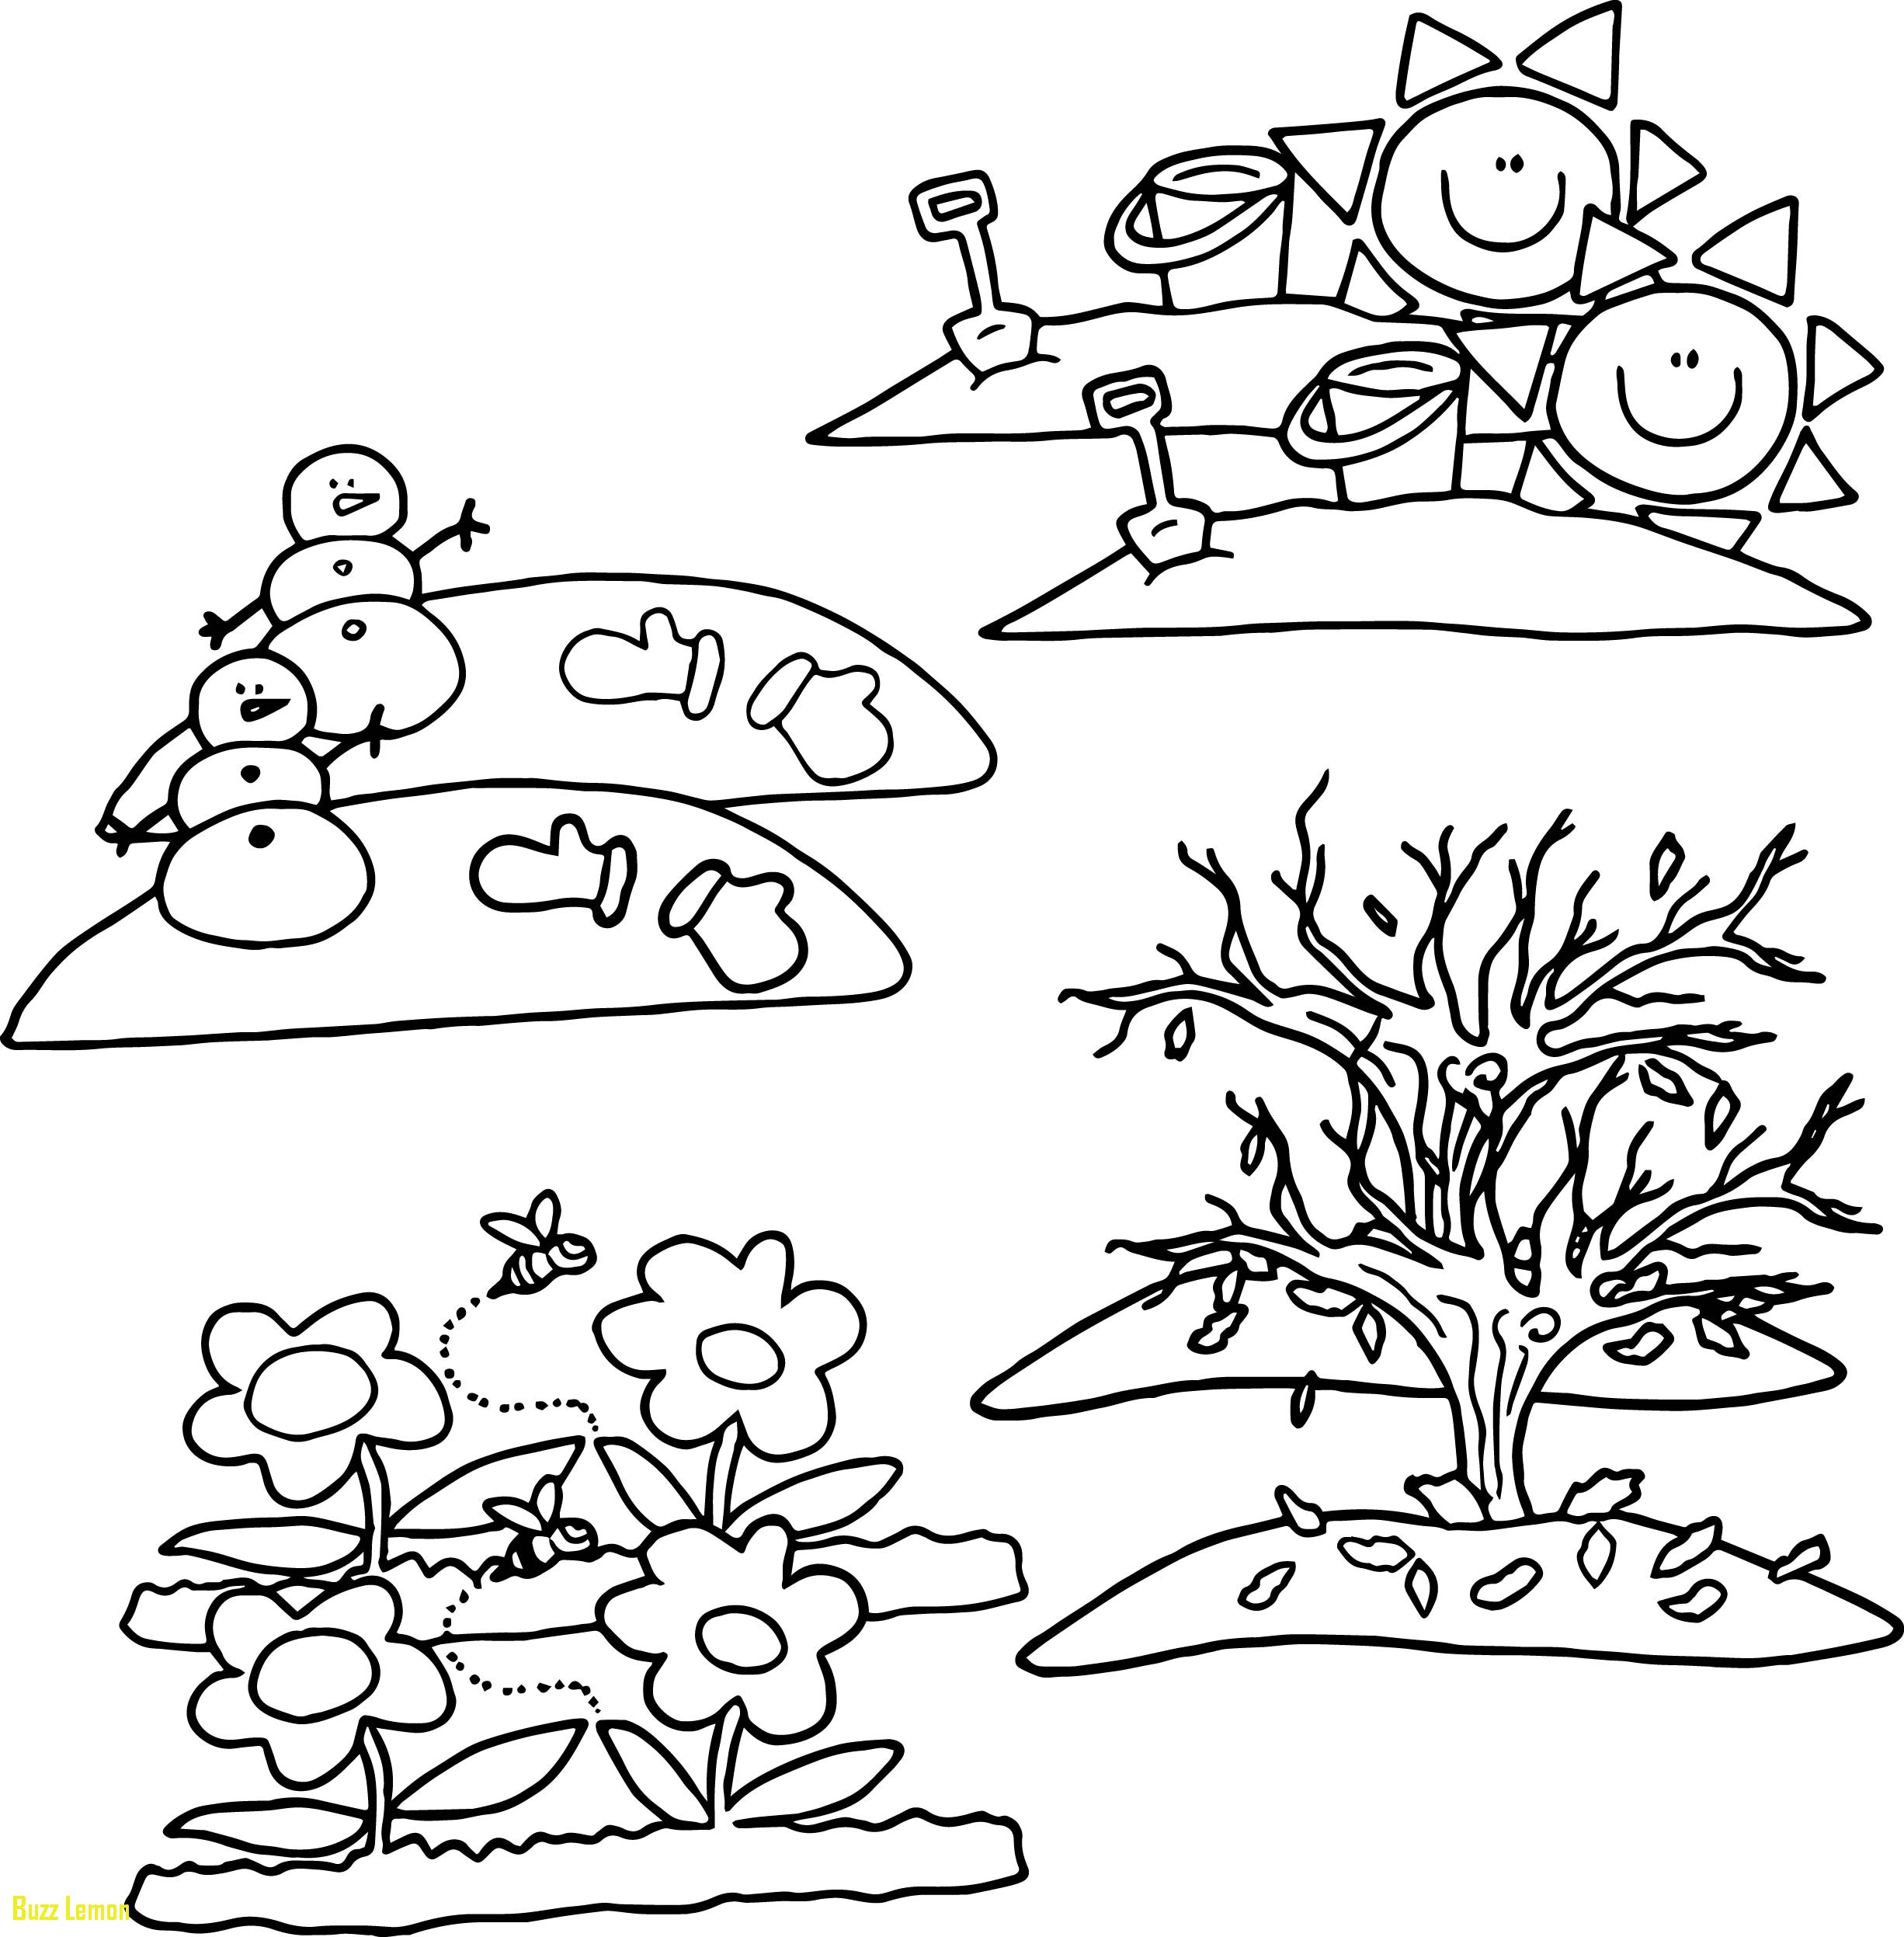 Four Seasons Coloring Page At Getdrawings